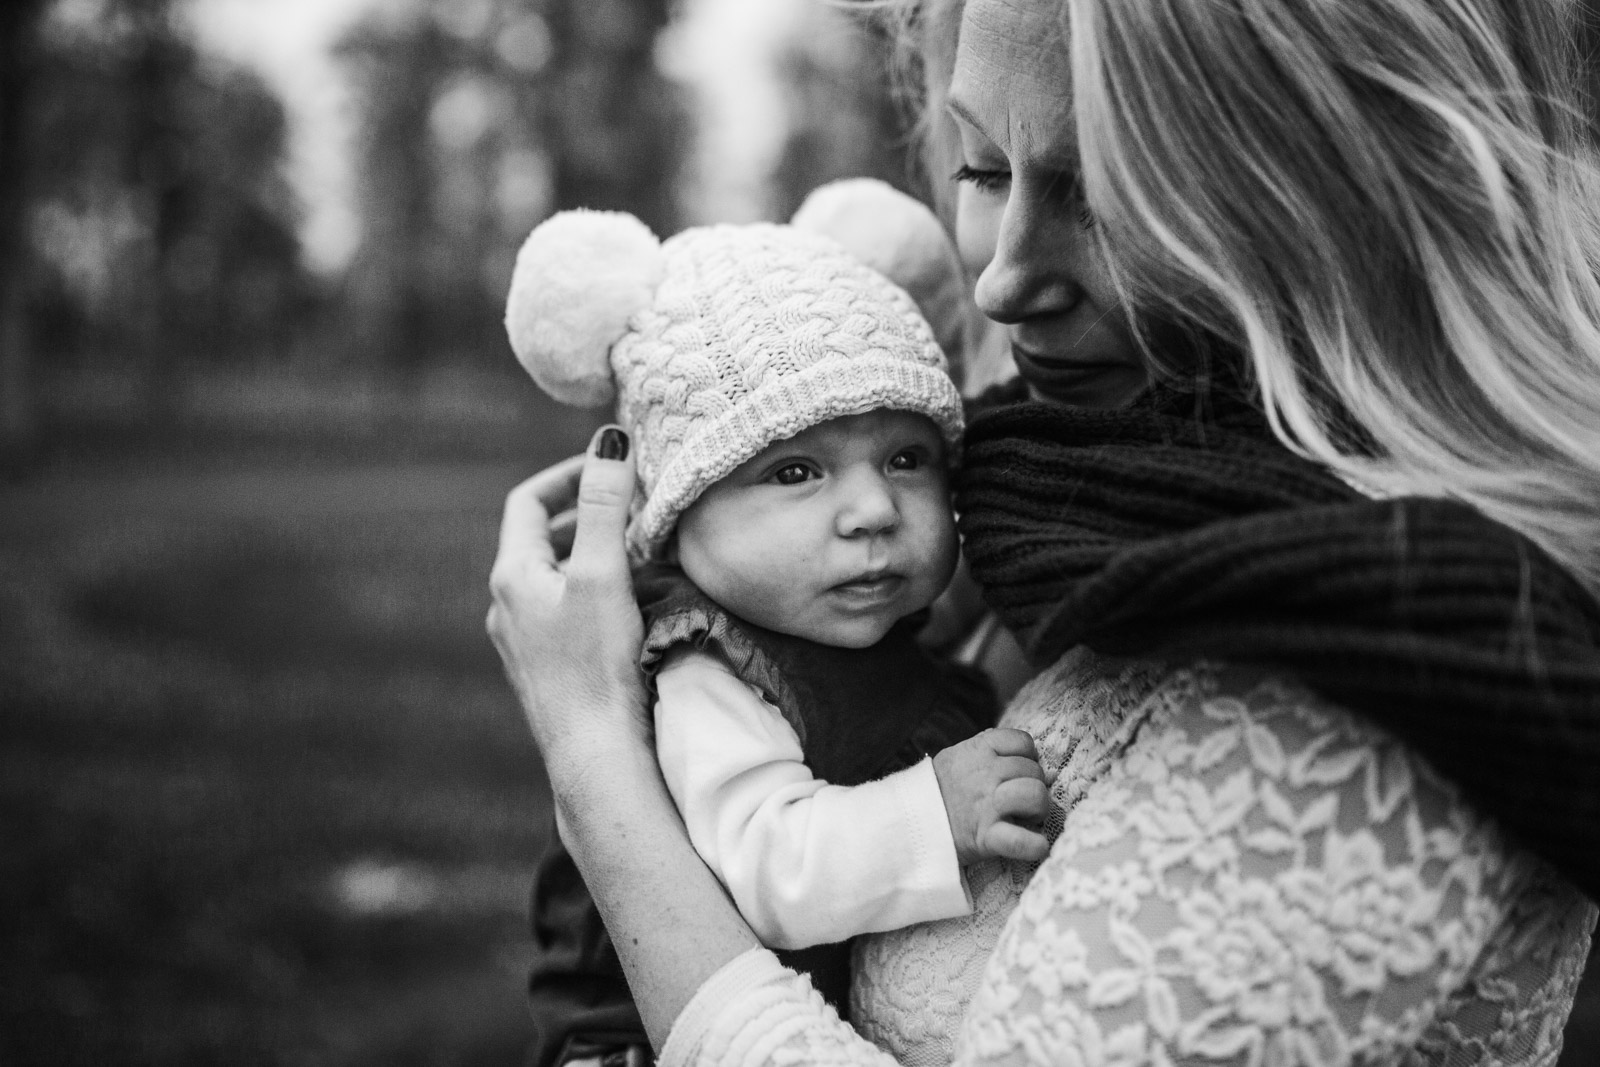 Black and white; mom holding infant daughter in knit hat at The Barn at One Loudoun, Ashburn, Virginia